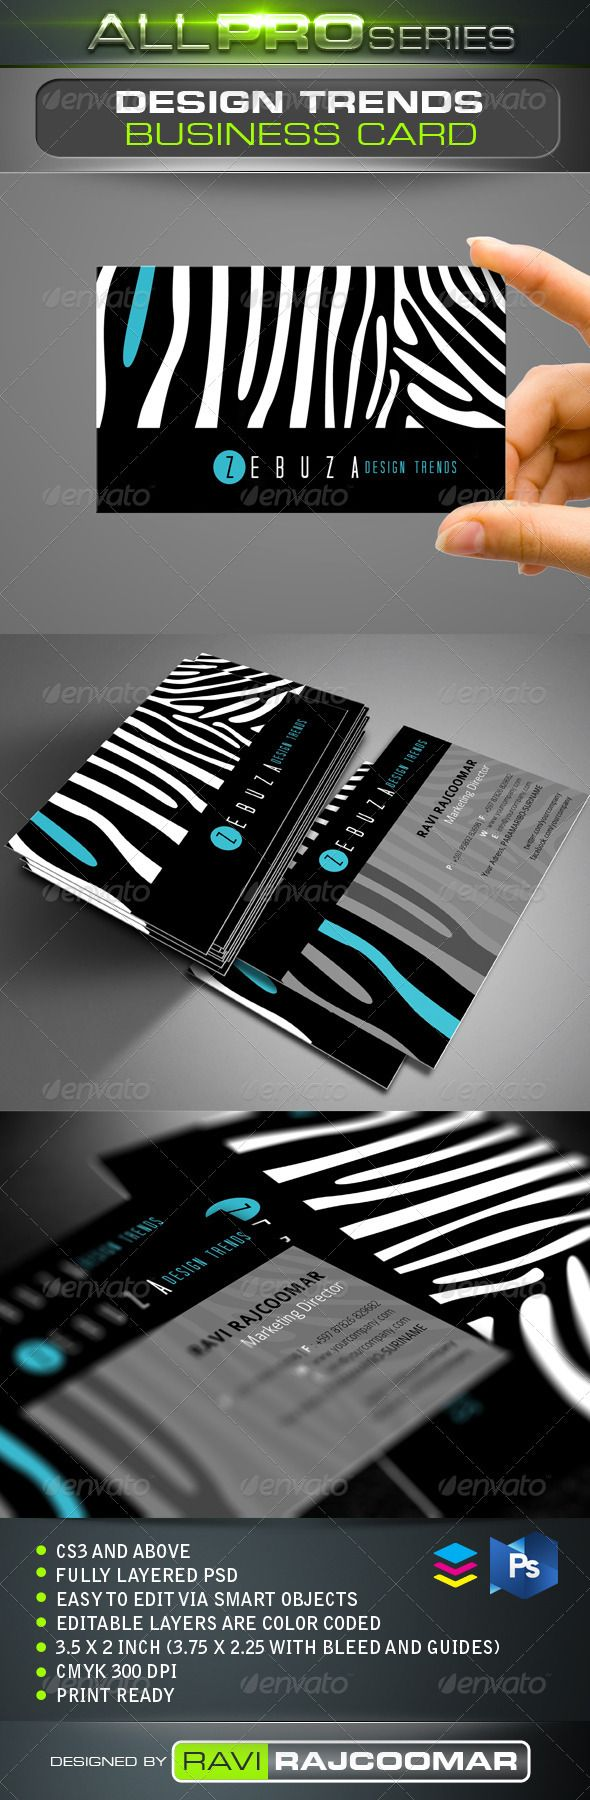 Design Trends Business Card #GraphicRiver CS3 and above Fully layered CMYK mode 300 DPI Easy to edit via smart objects Editable layers are color coded 3.75×2.25 inch dimension including bleed Print ready Help guide Included Fonts info included in the instruction file and they can be obtained for free. Very easy to customize and change your own color of choice. Thanks again for your support and If you have a moment, please rate this item, I'll appreciate it very much! Created: 25November12…